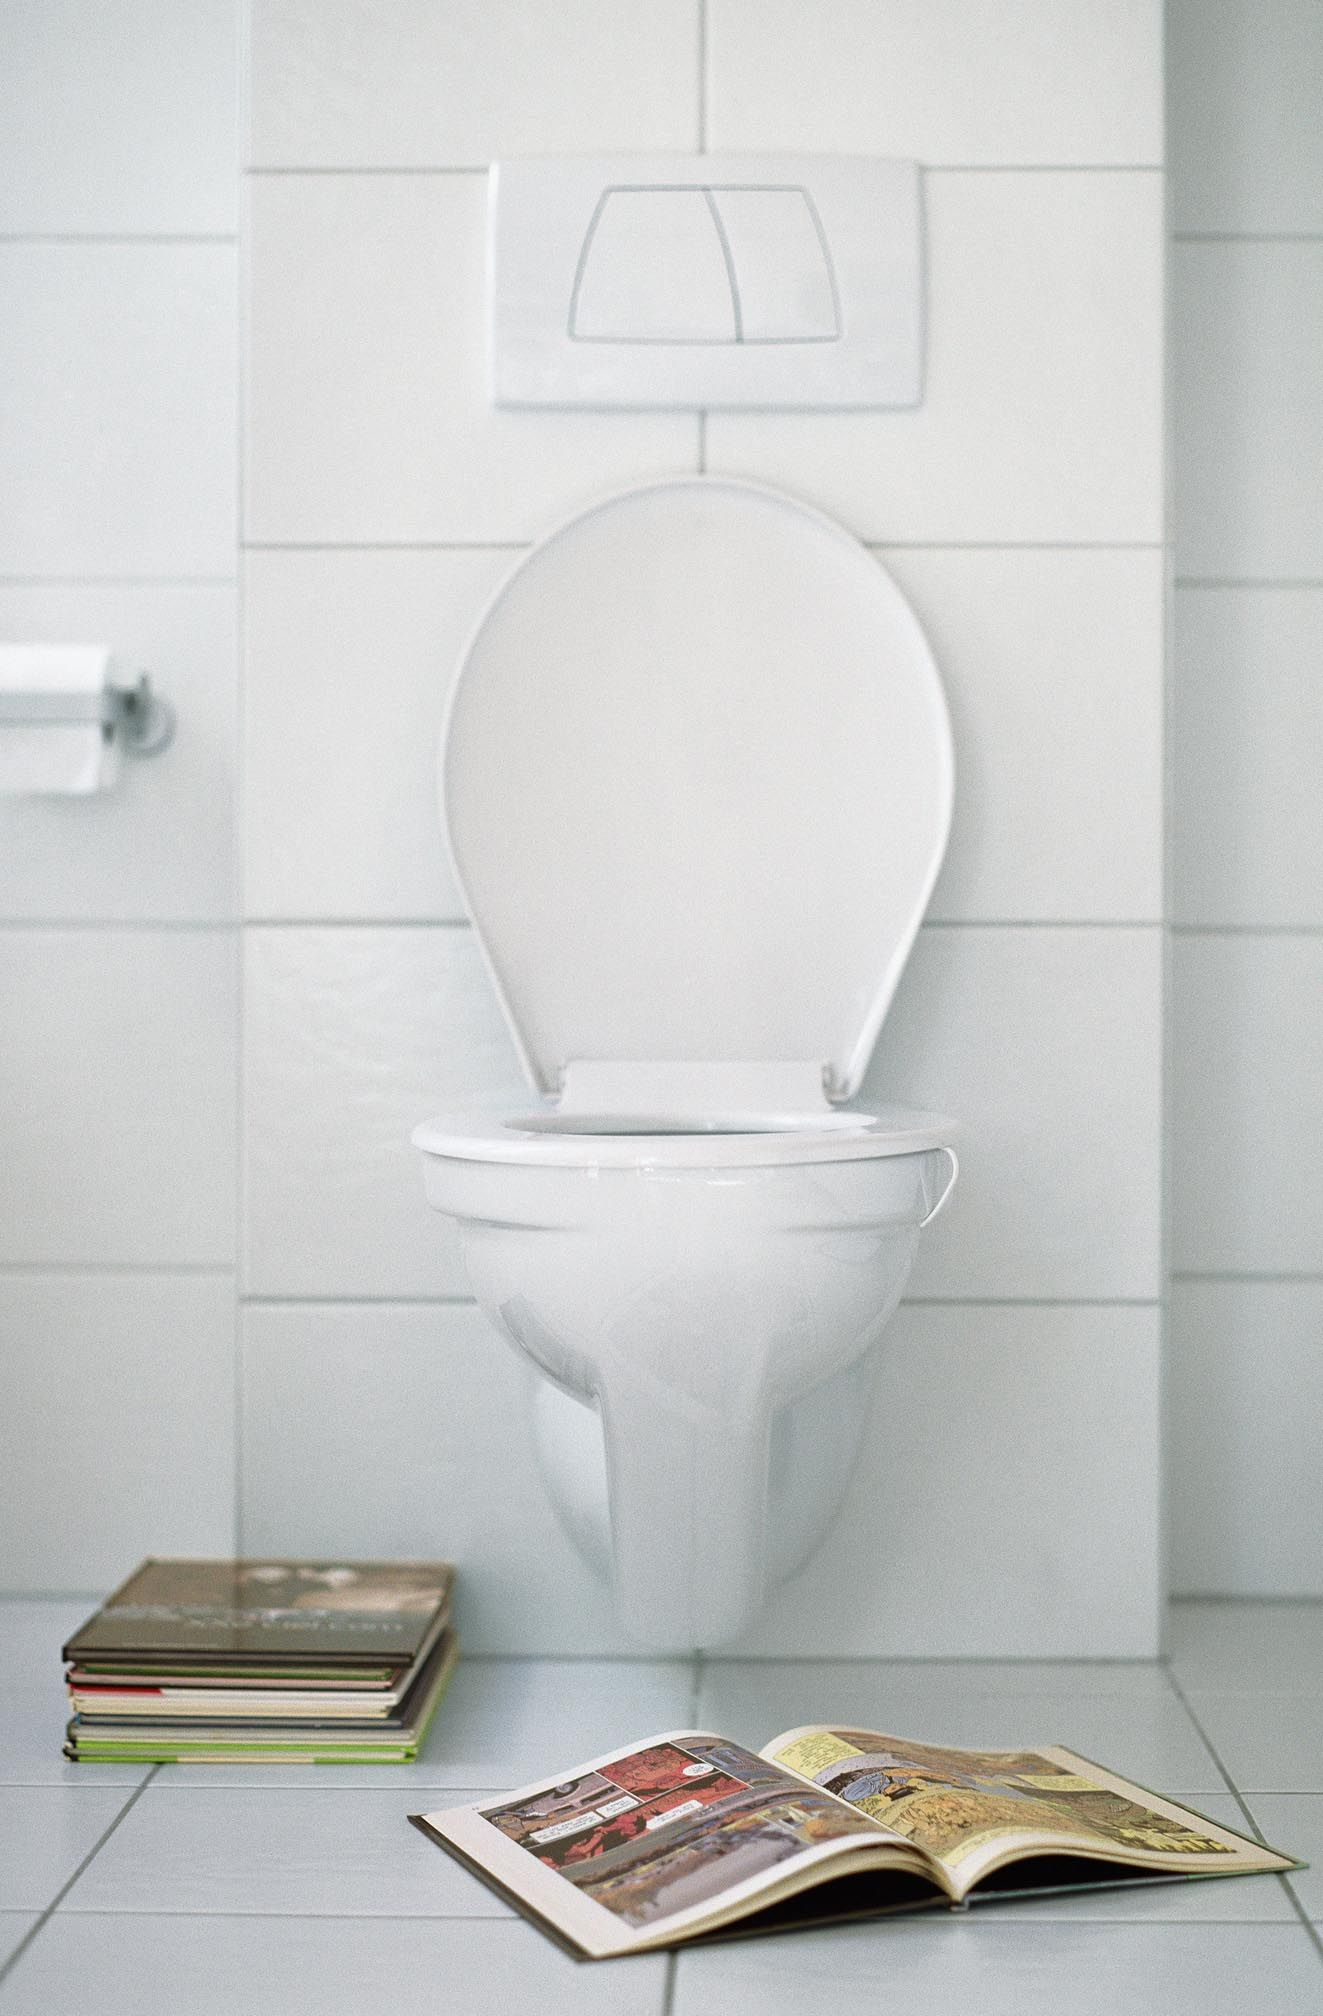 Things You Should Remove From Your Bathroom - Bathroom Advice